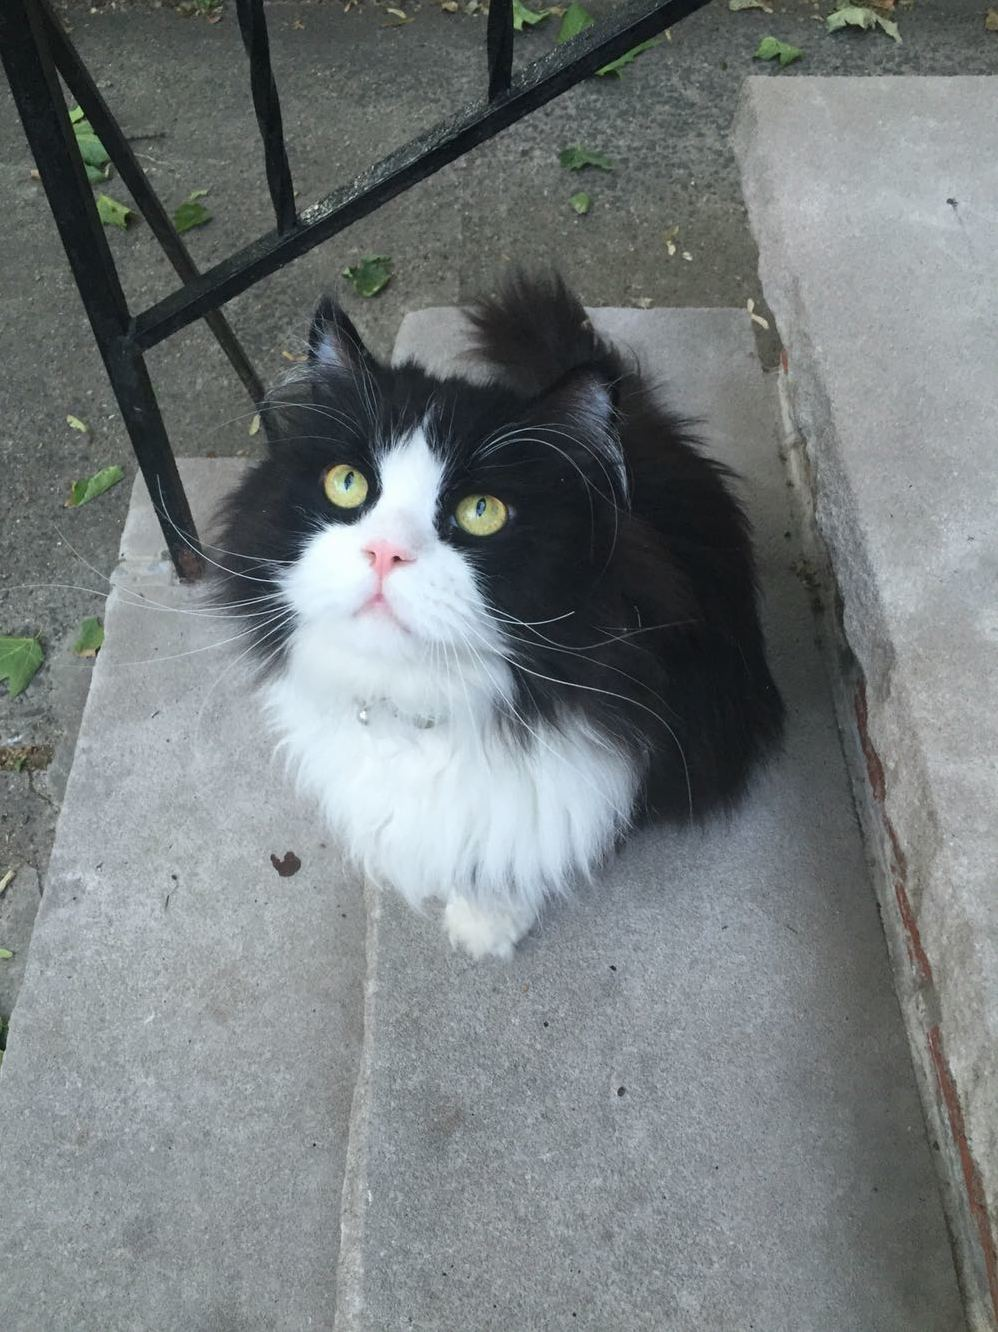 So stoop cat minkus left his stoop this evening and is currently lounging on my porch